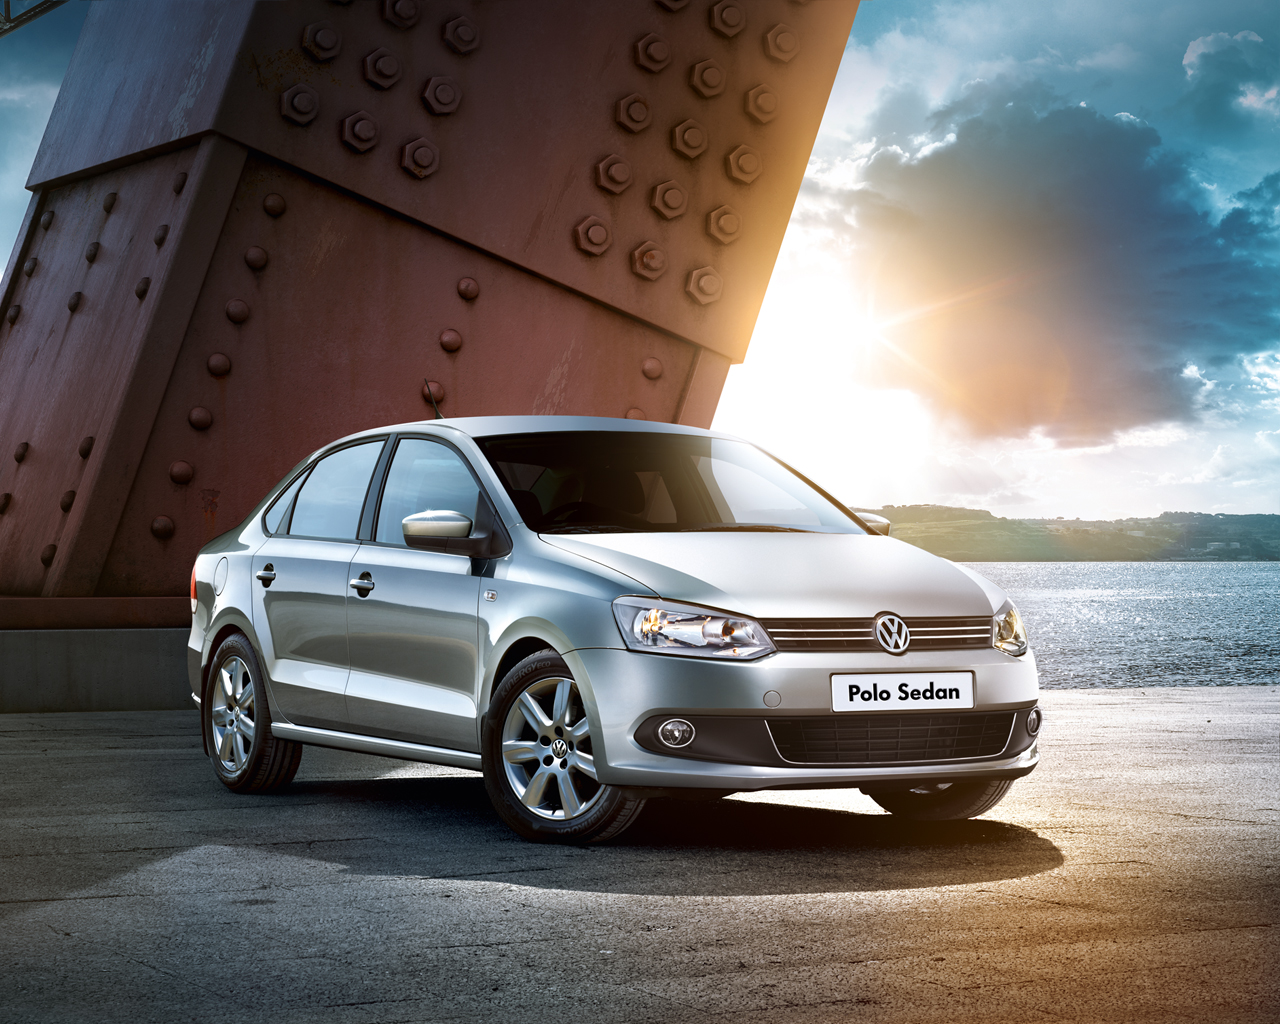 VOLKSWAGEN Polo Sedan specs - 2010, 2011, 2012, 2013, 2014, 2015, 2016, 2017, 2018 - autoevolution